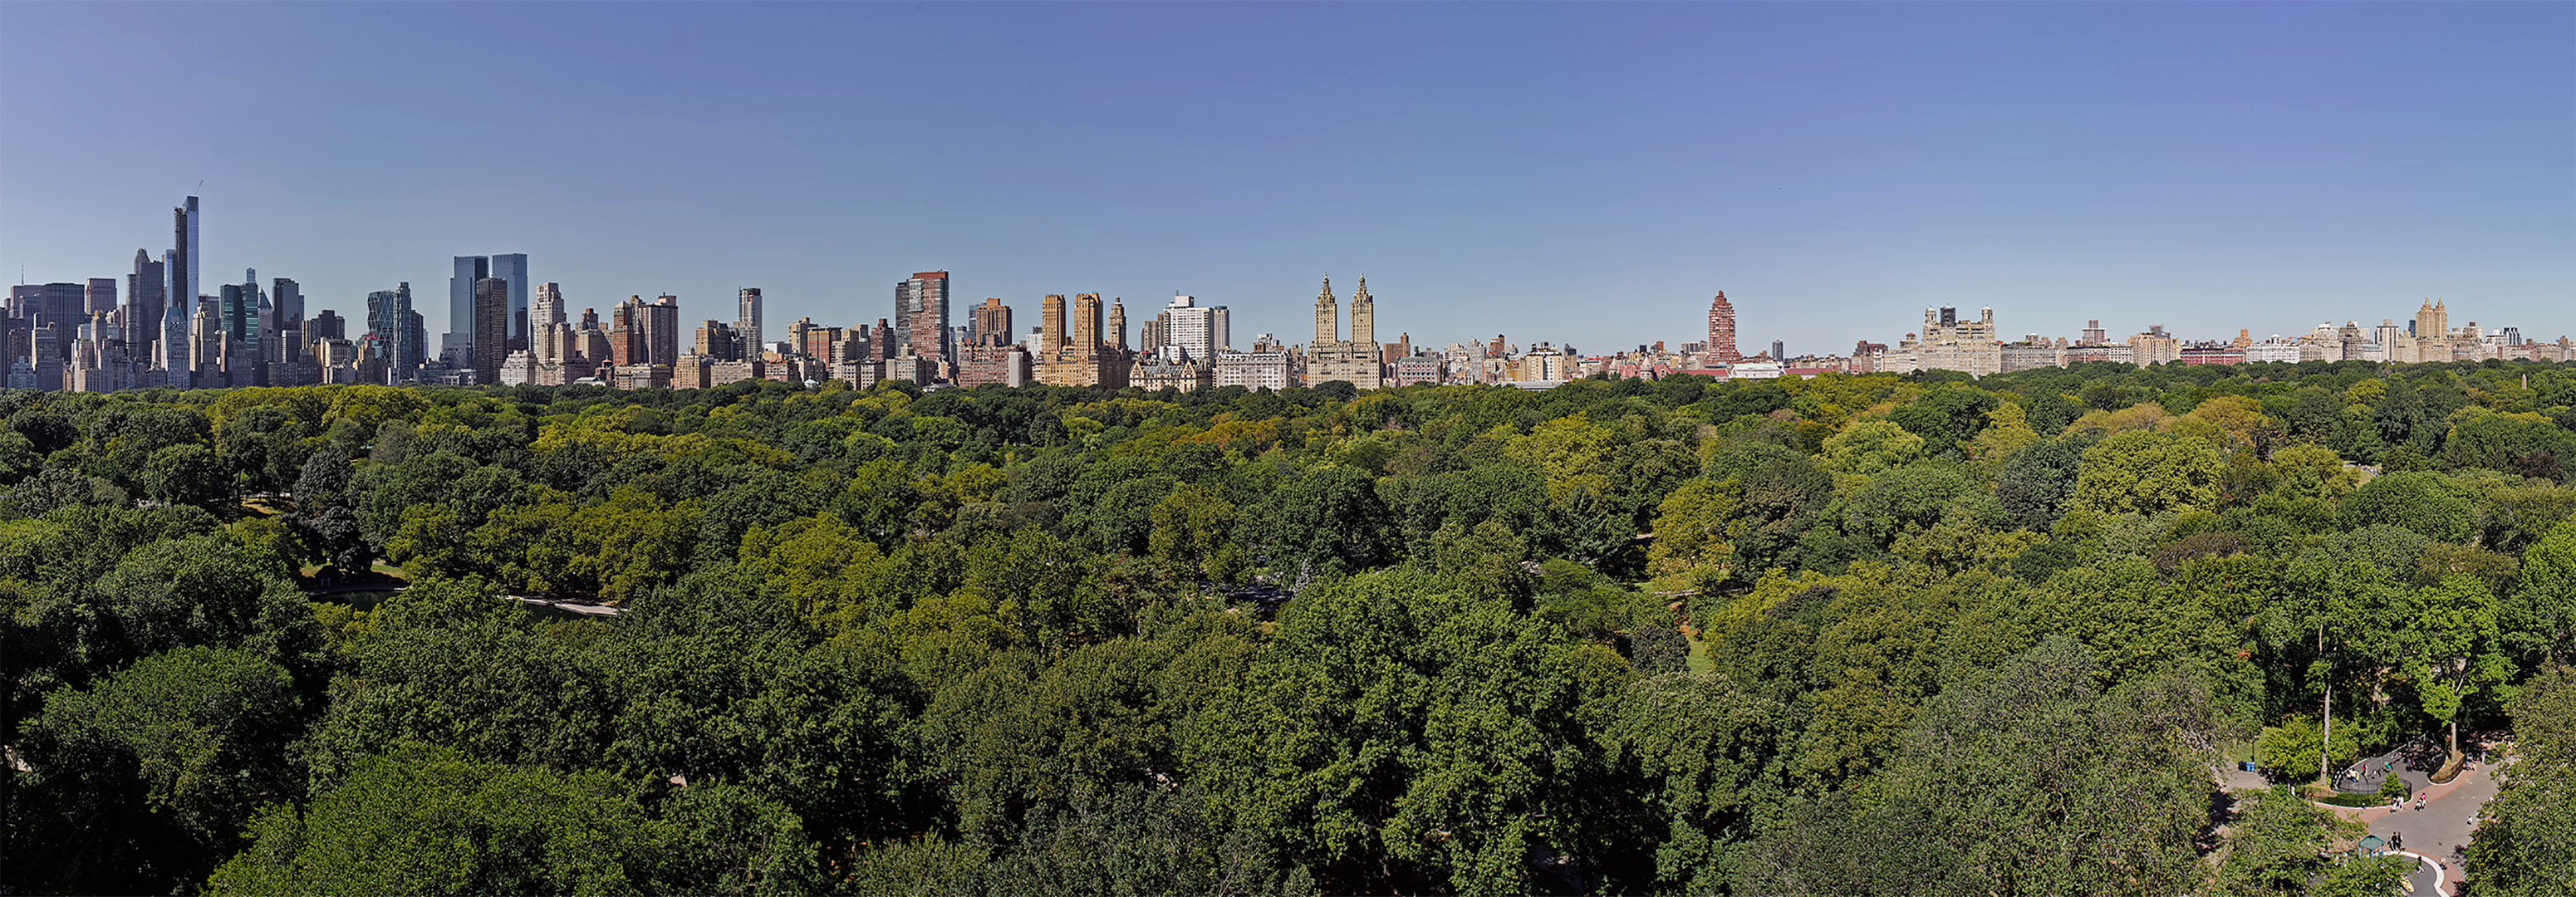 New_York_Skyline_with_Central_Park_in_the_Foreground